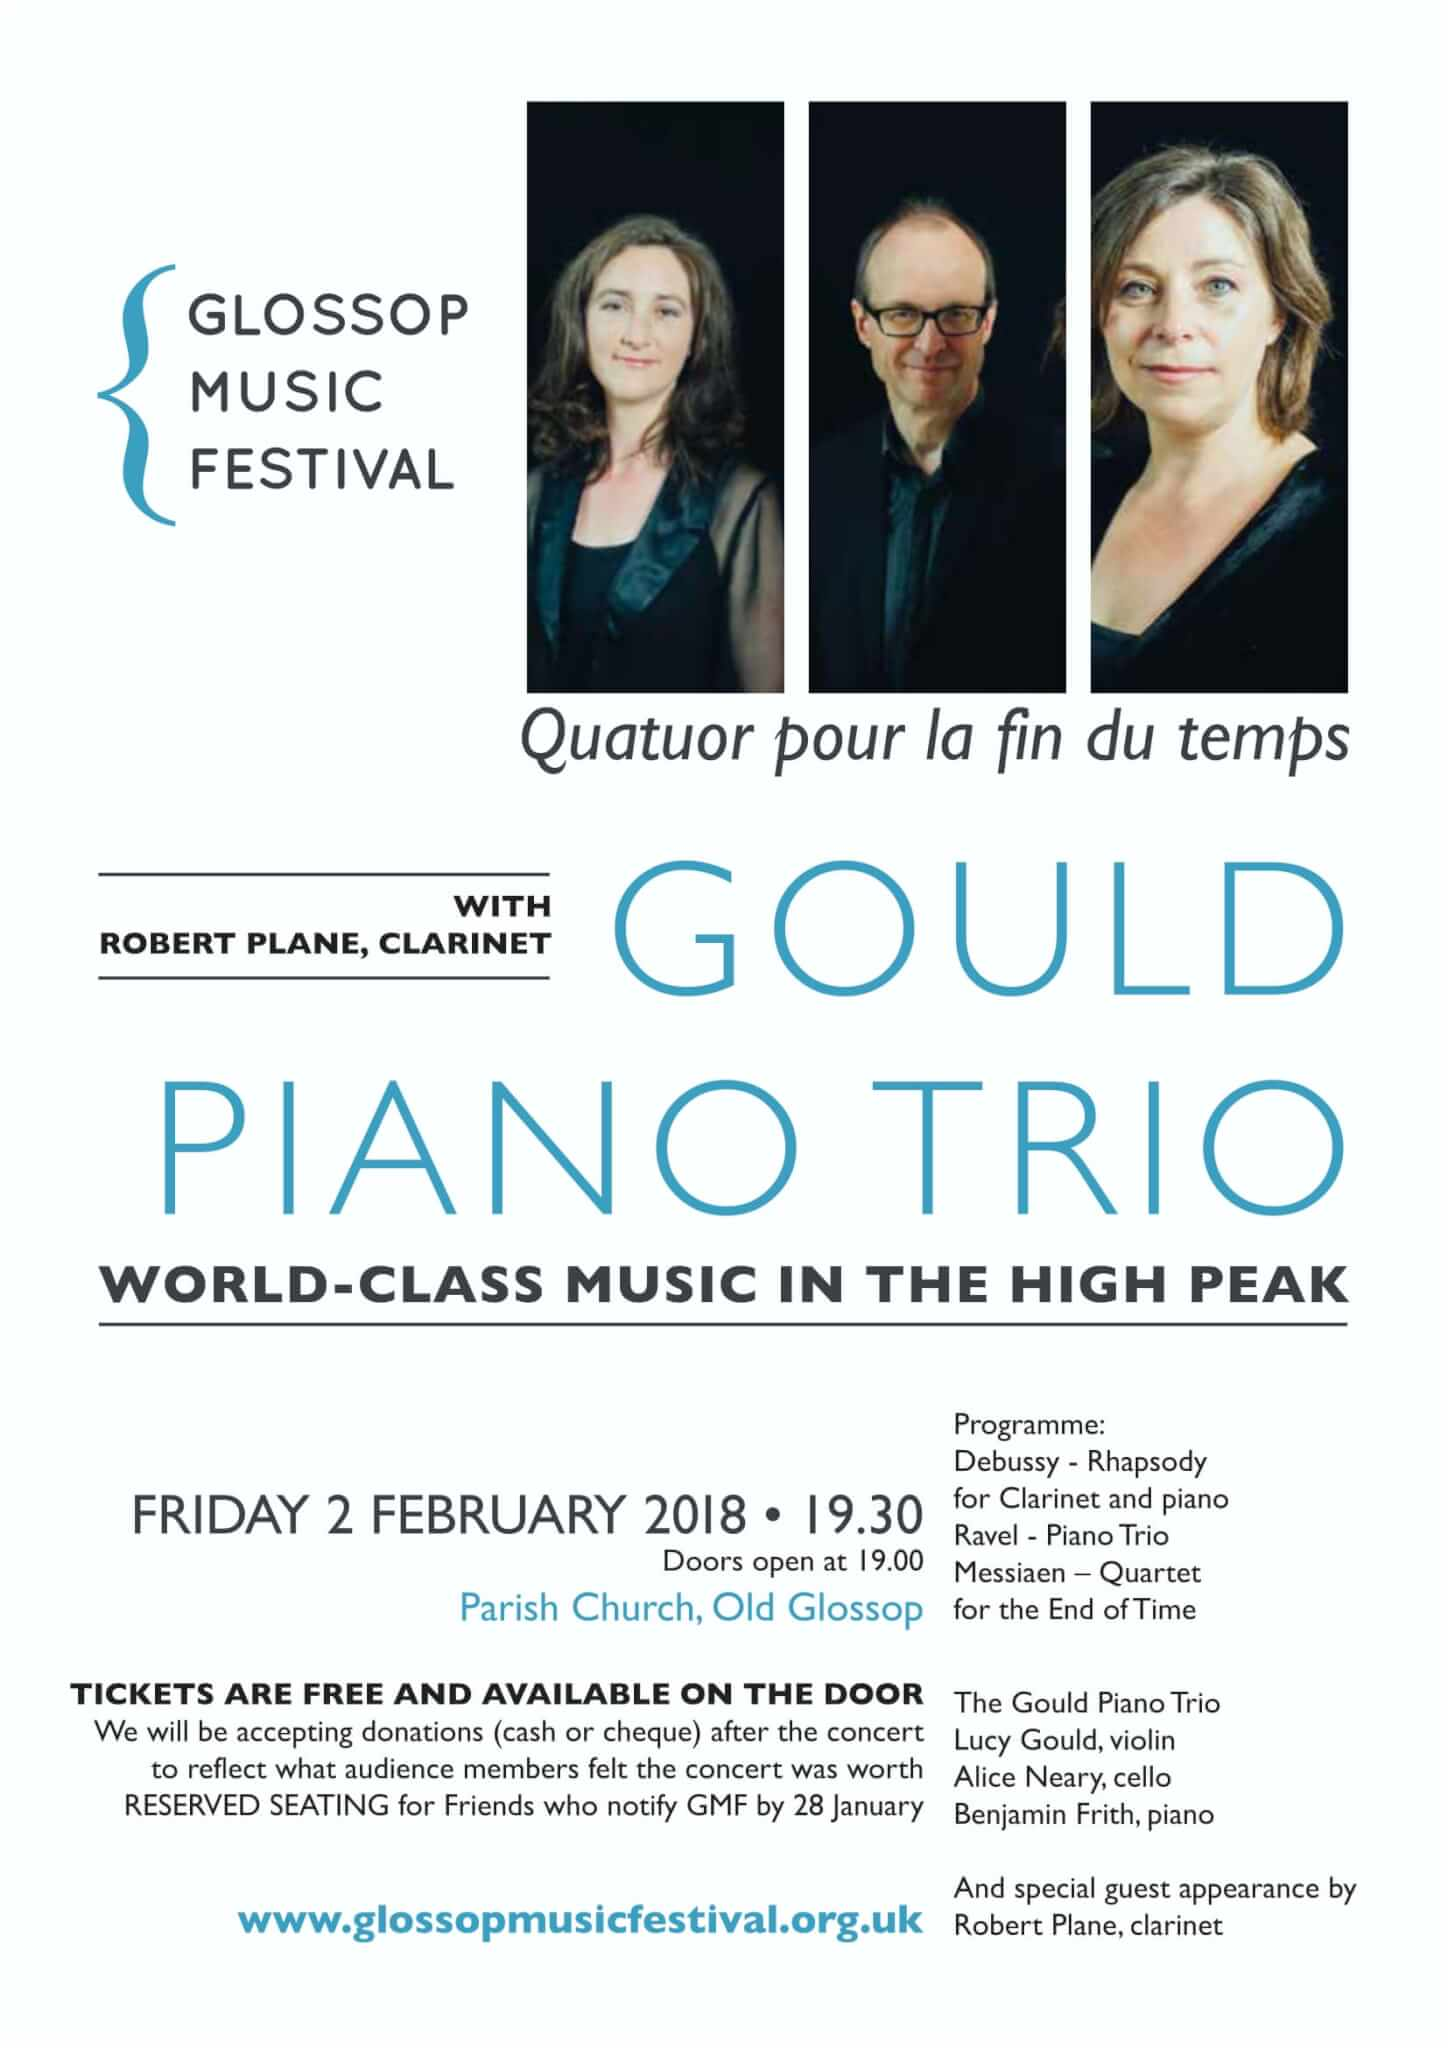 The Gould Piano Trio with Robert Plane